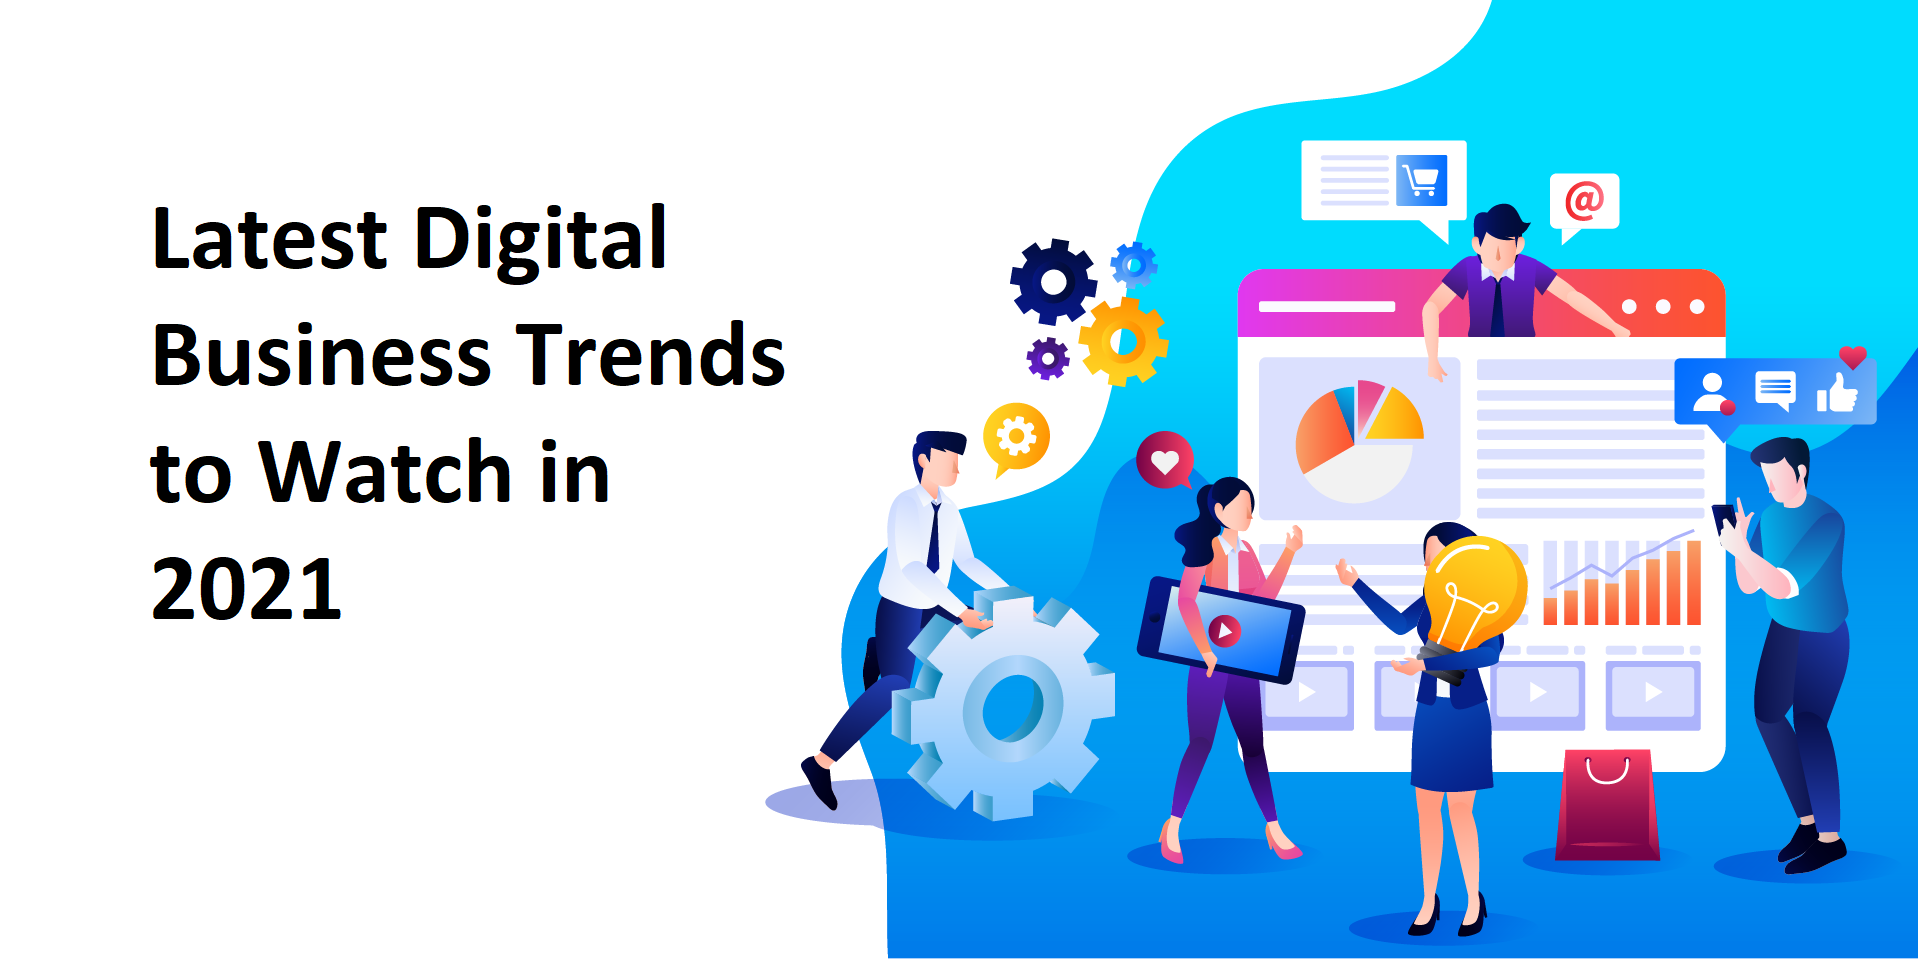 Latest Digital Business Trends to Watch in 2021